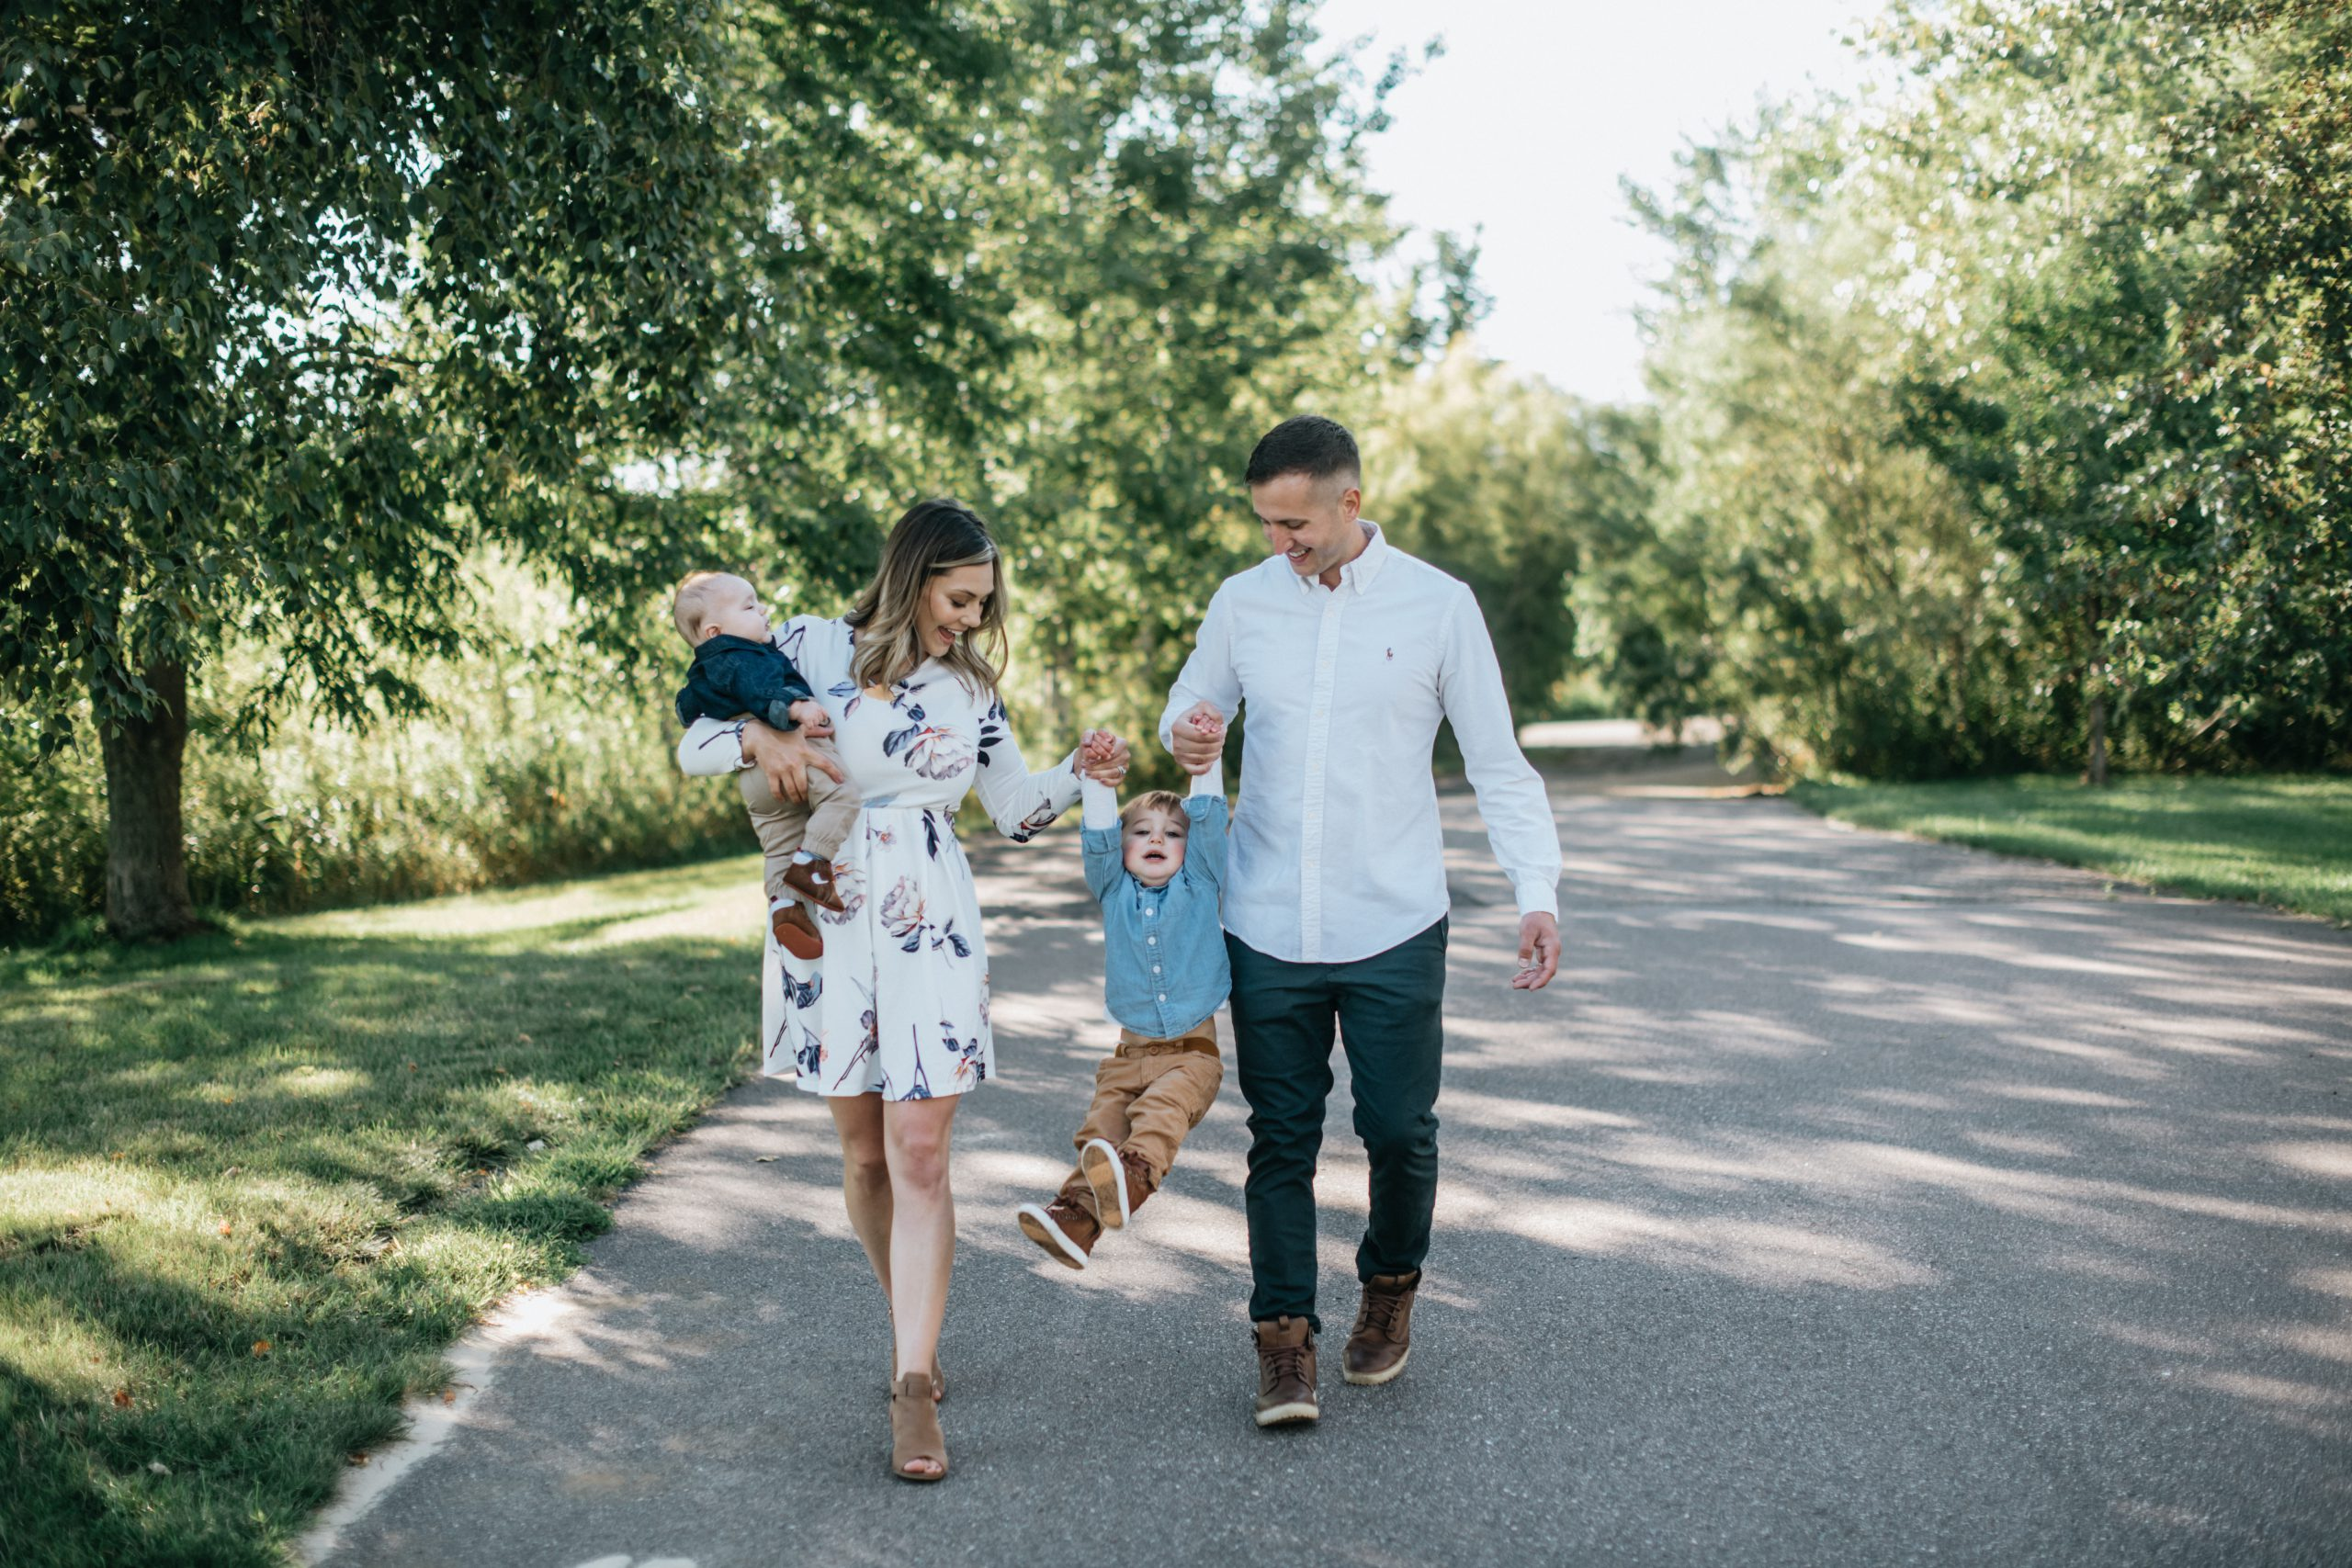 family walking and swinging their toddler by his hands.